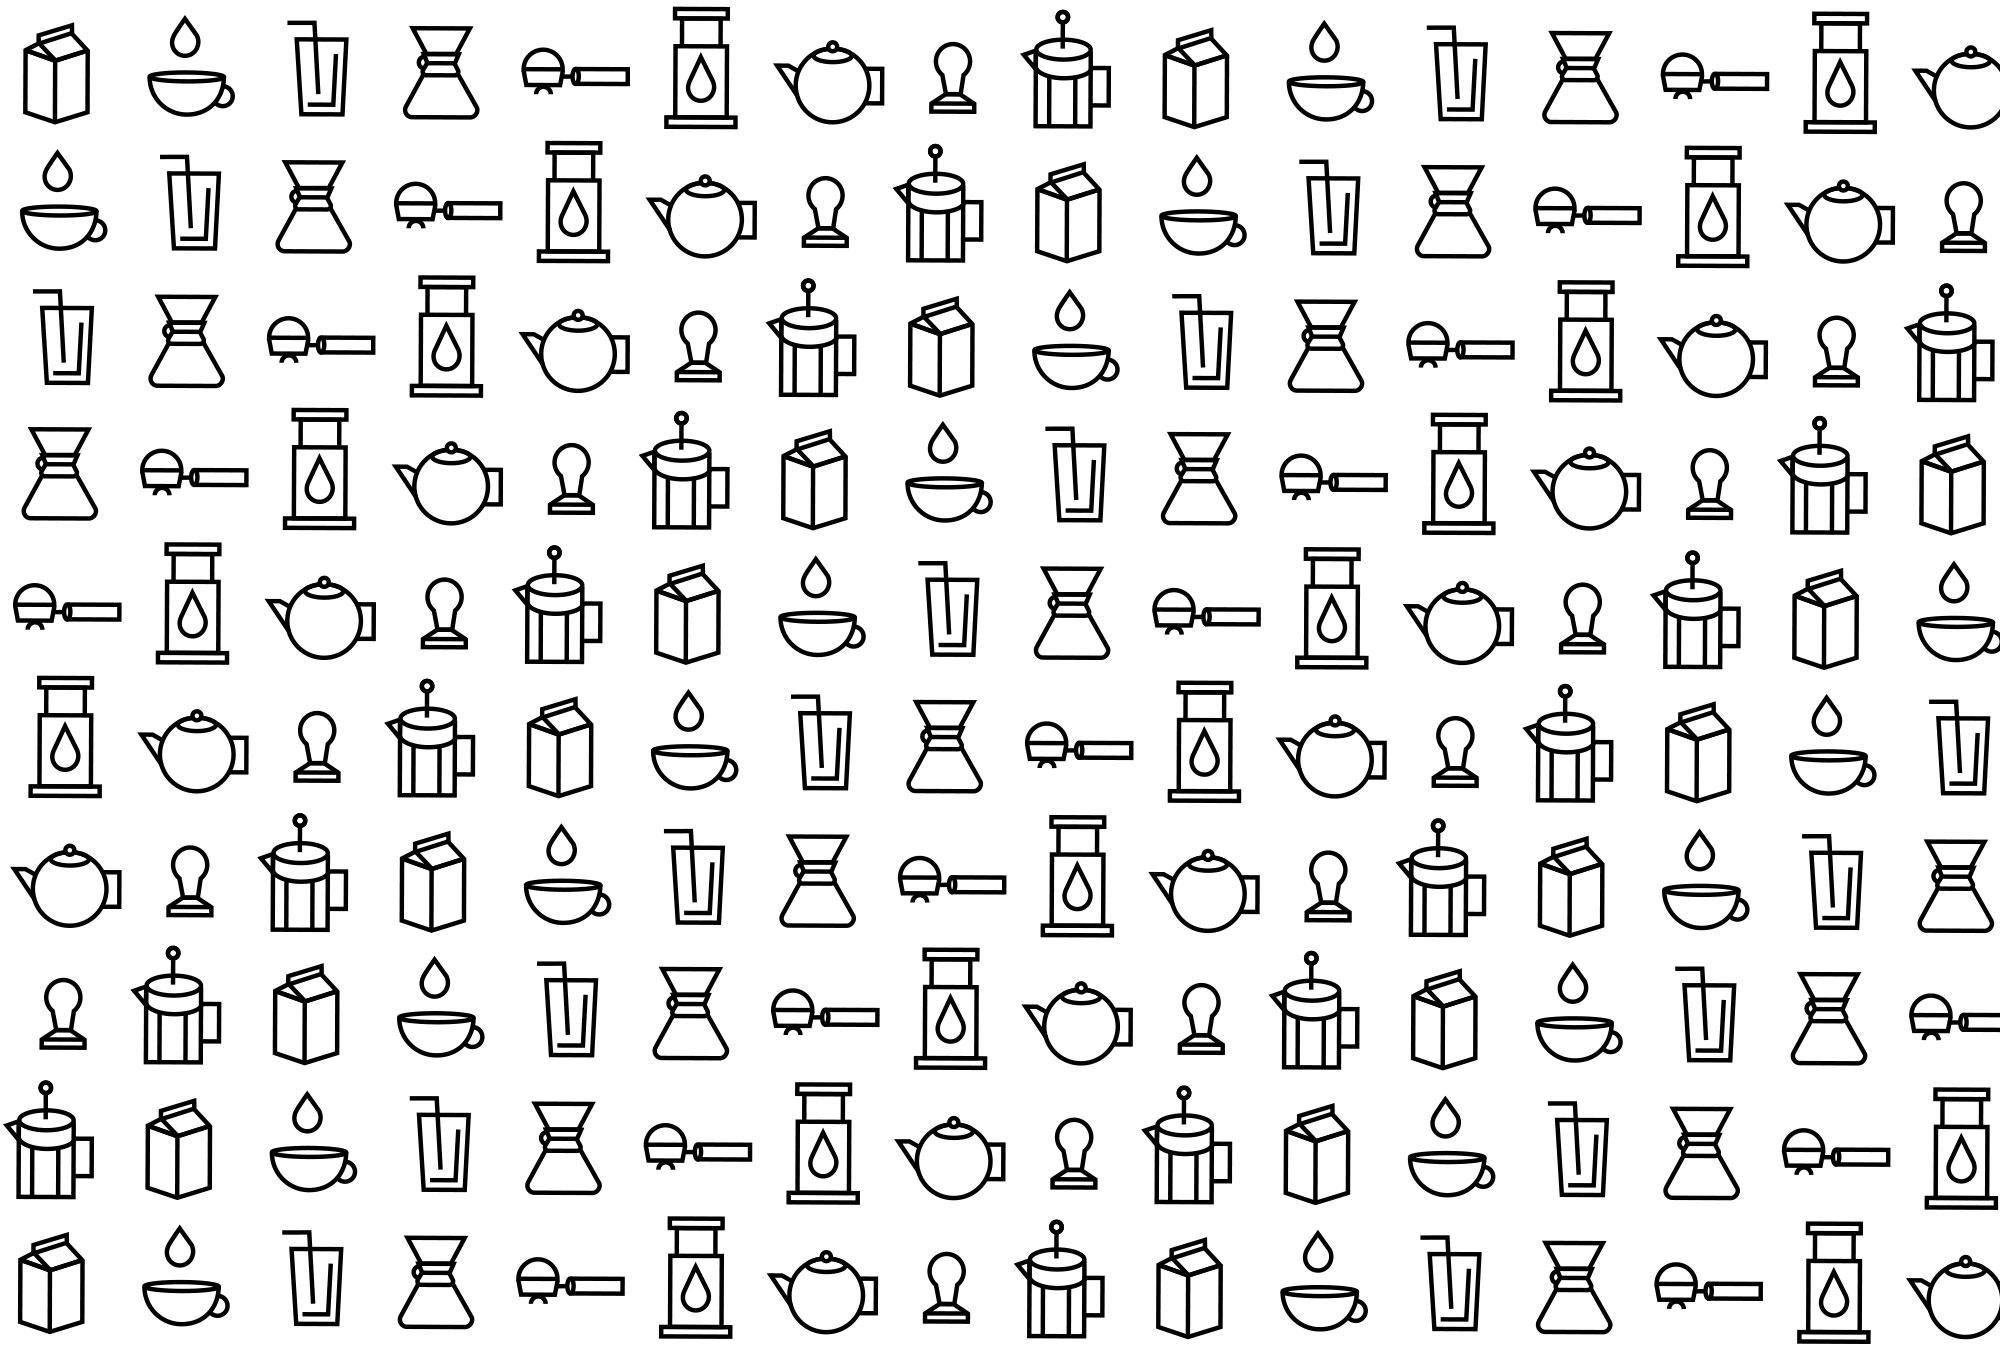 Vice_Icons_2